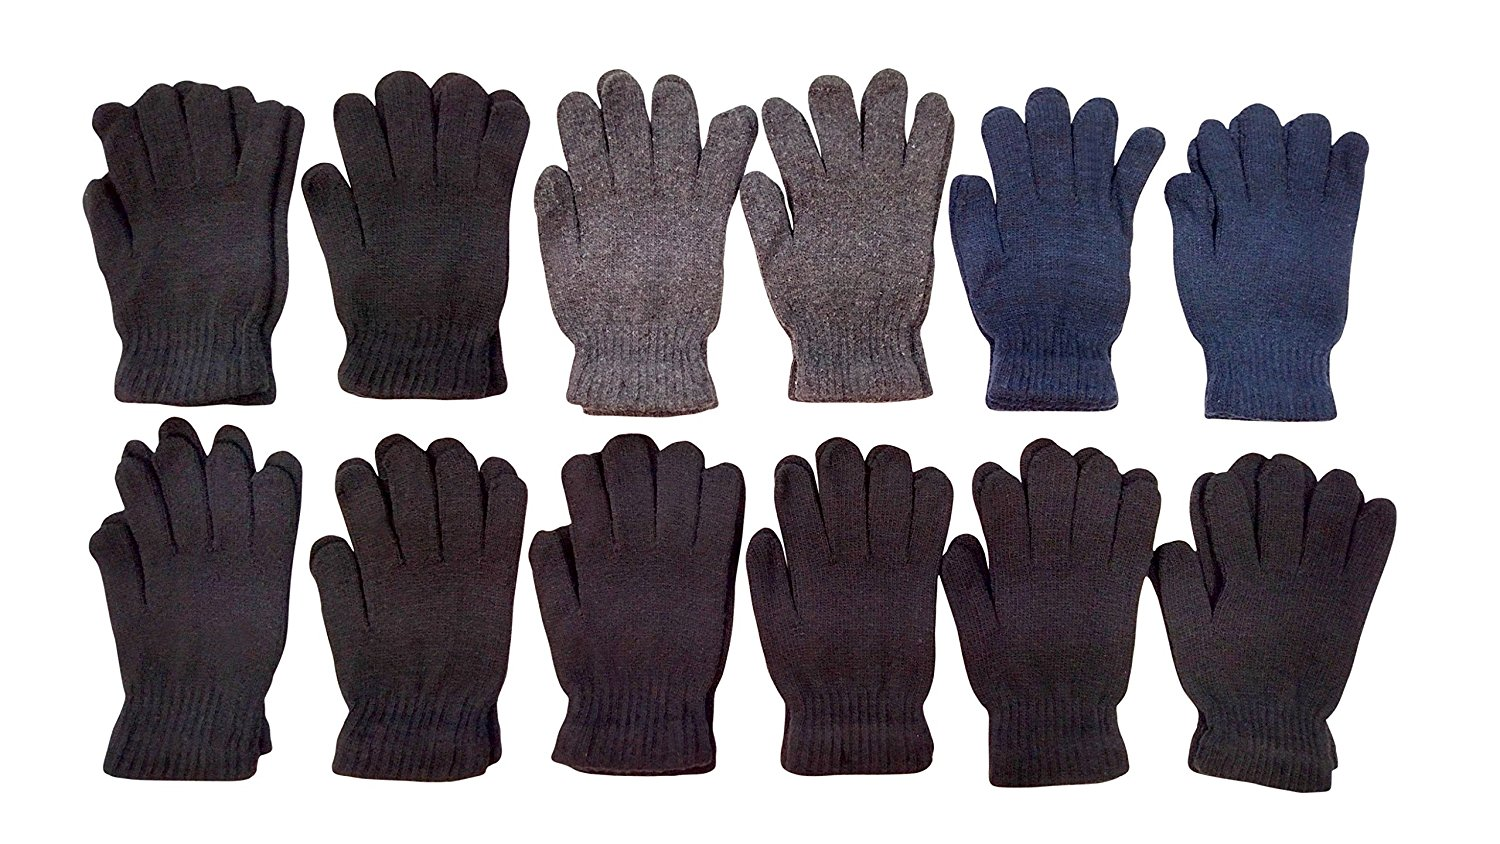 12 Pairs Of excell Solid Color Wool Gloves Mens Womens, Stretchy so One Size by